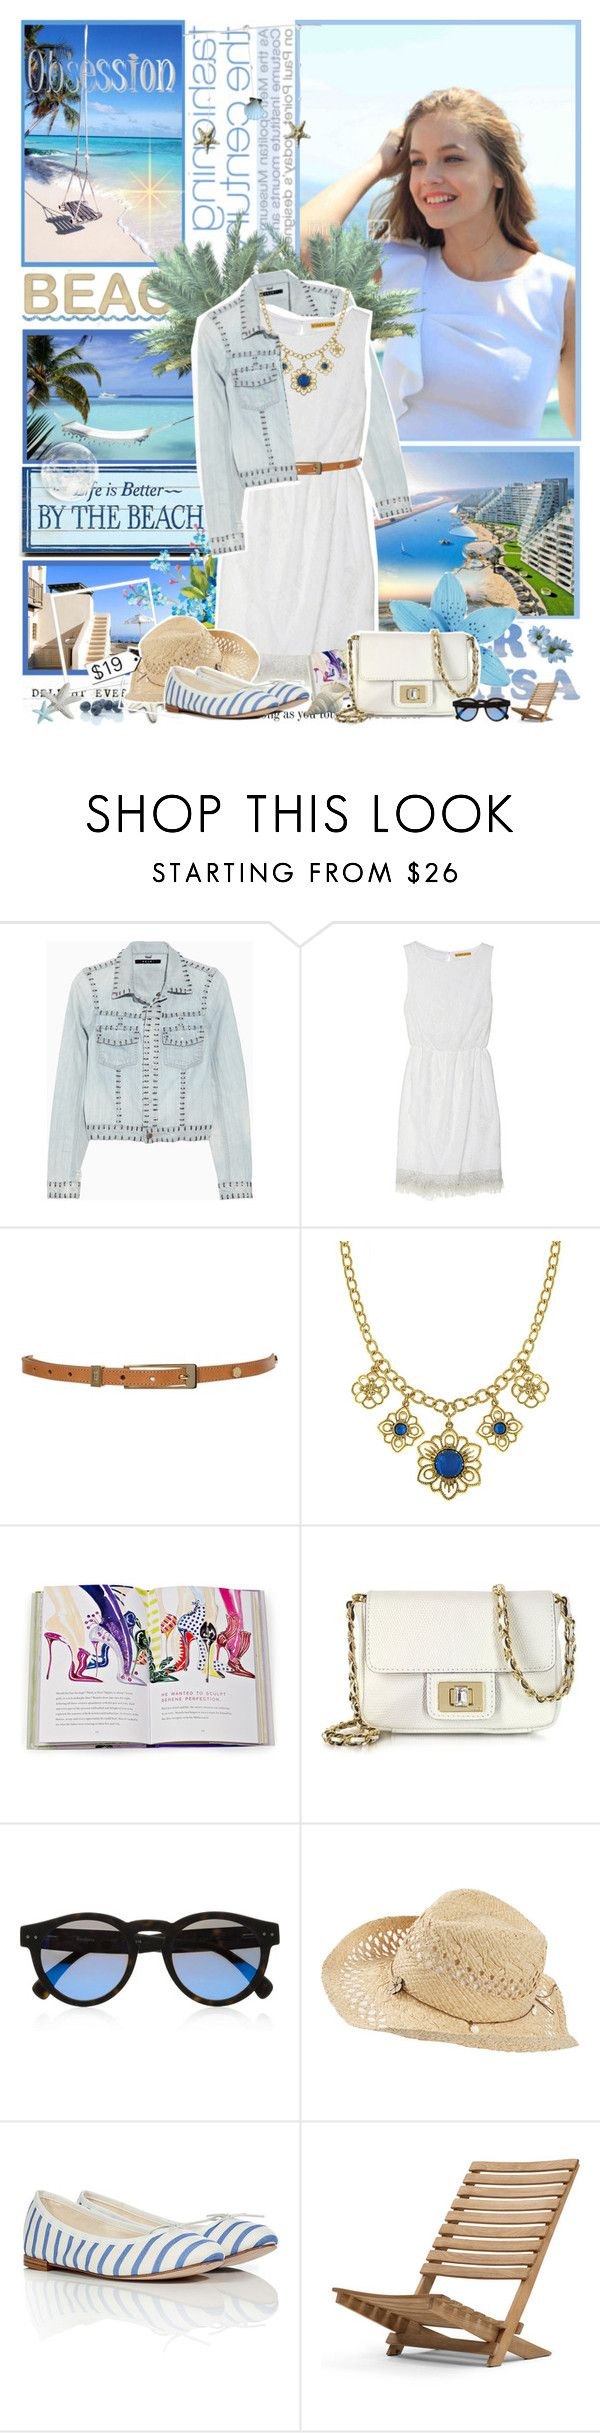 """Barbara Palvin"" by aane1aa ❤ liked on Polyvore featuring PLANT, Ksubi, Alice + Olivia, Biba, Juicy Couture, Illesteva, Fat Face, Repetto and Skagerak"